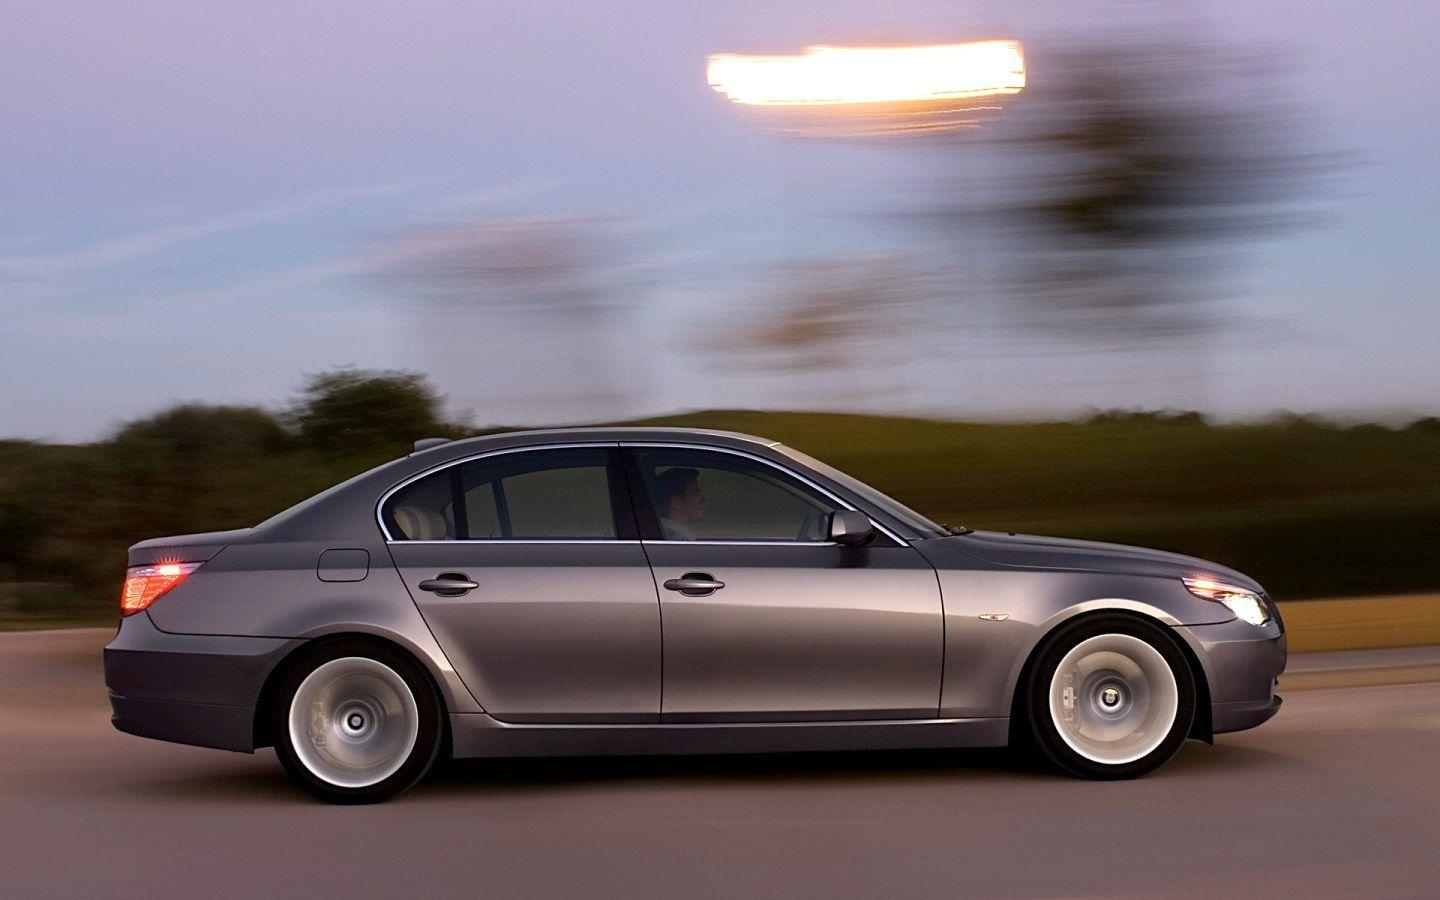 2008 BMW 5 Series Wallpaper 14 - 1440x900